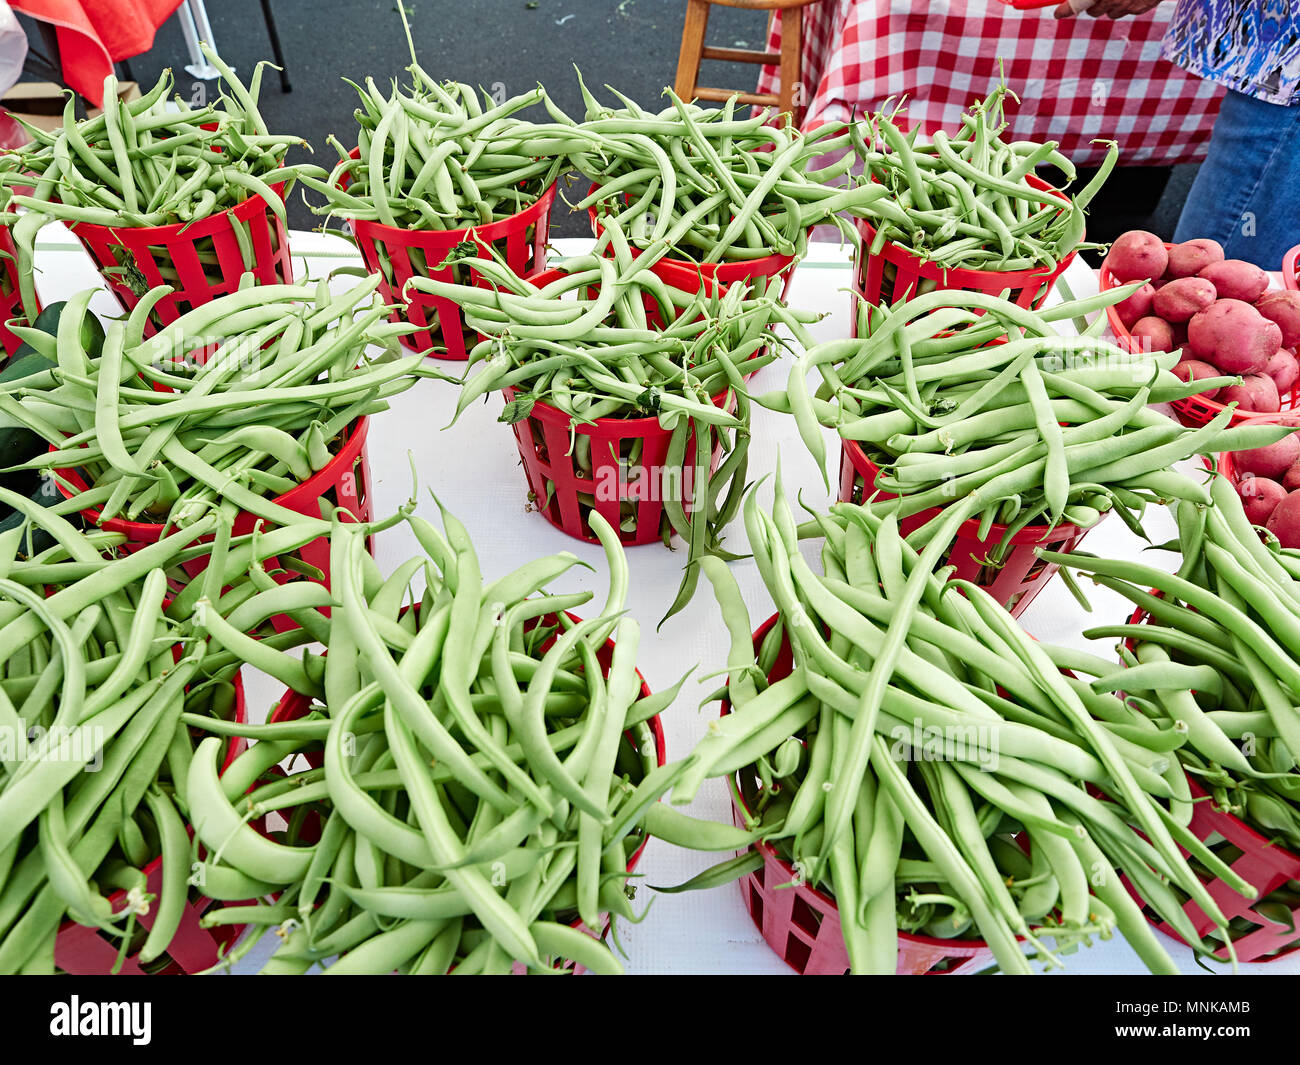 Baskets of green snap beans or green beans, on display, for sale, at a local farmer's market in Montgomery Alabama, USA. - Stock Image